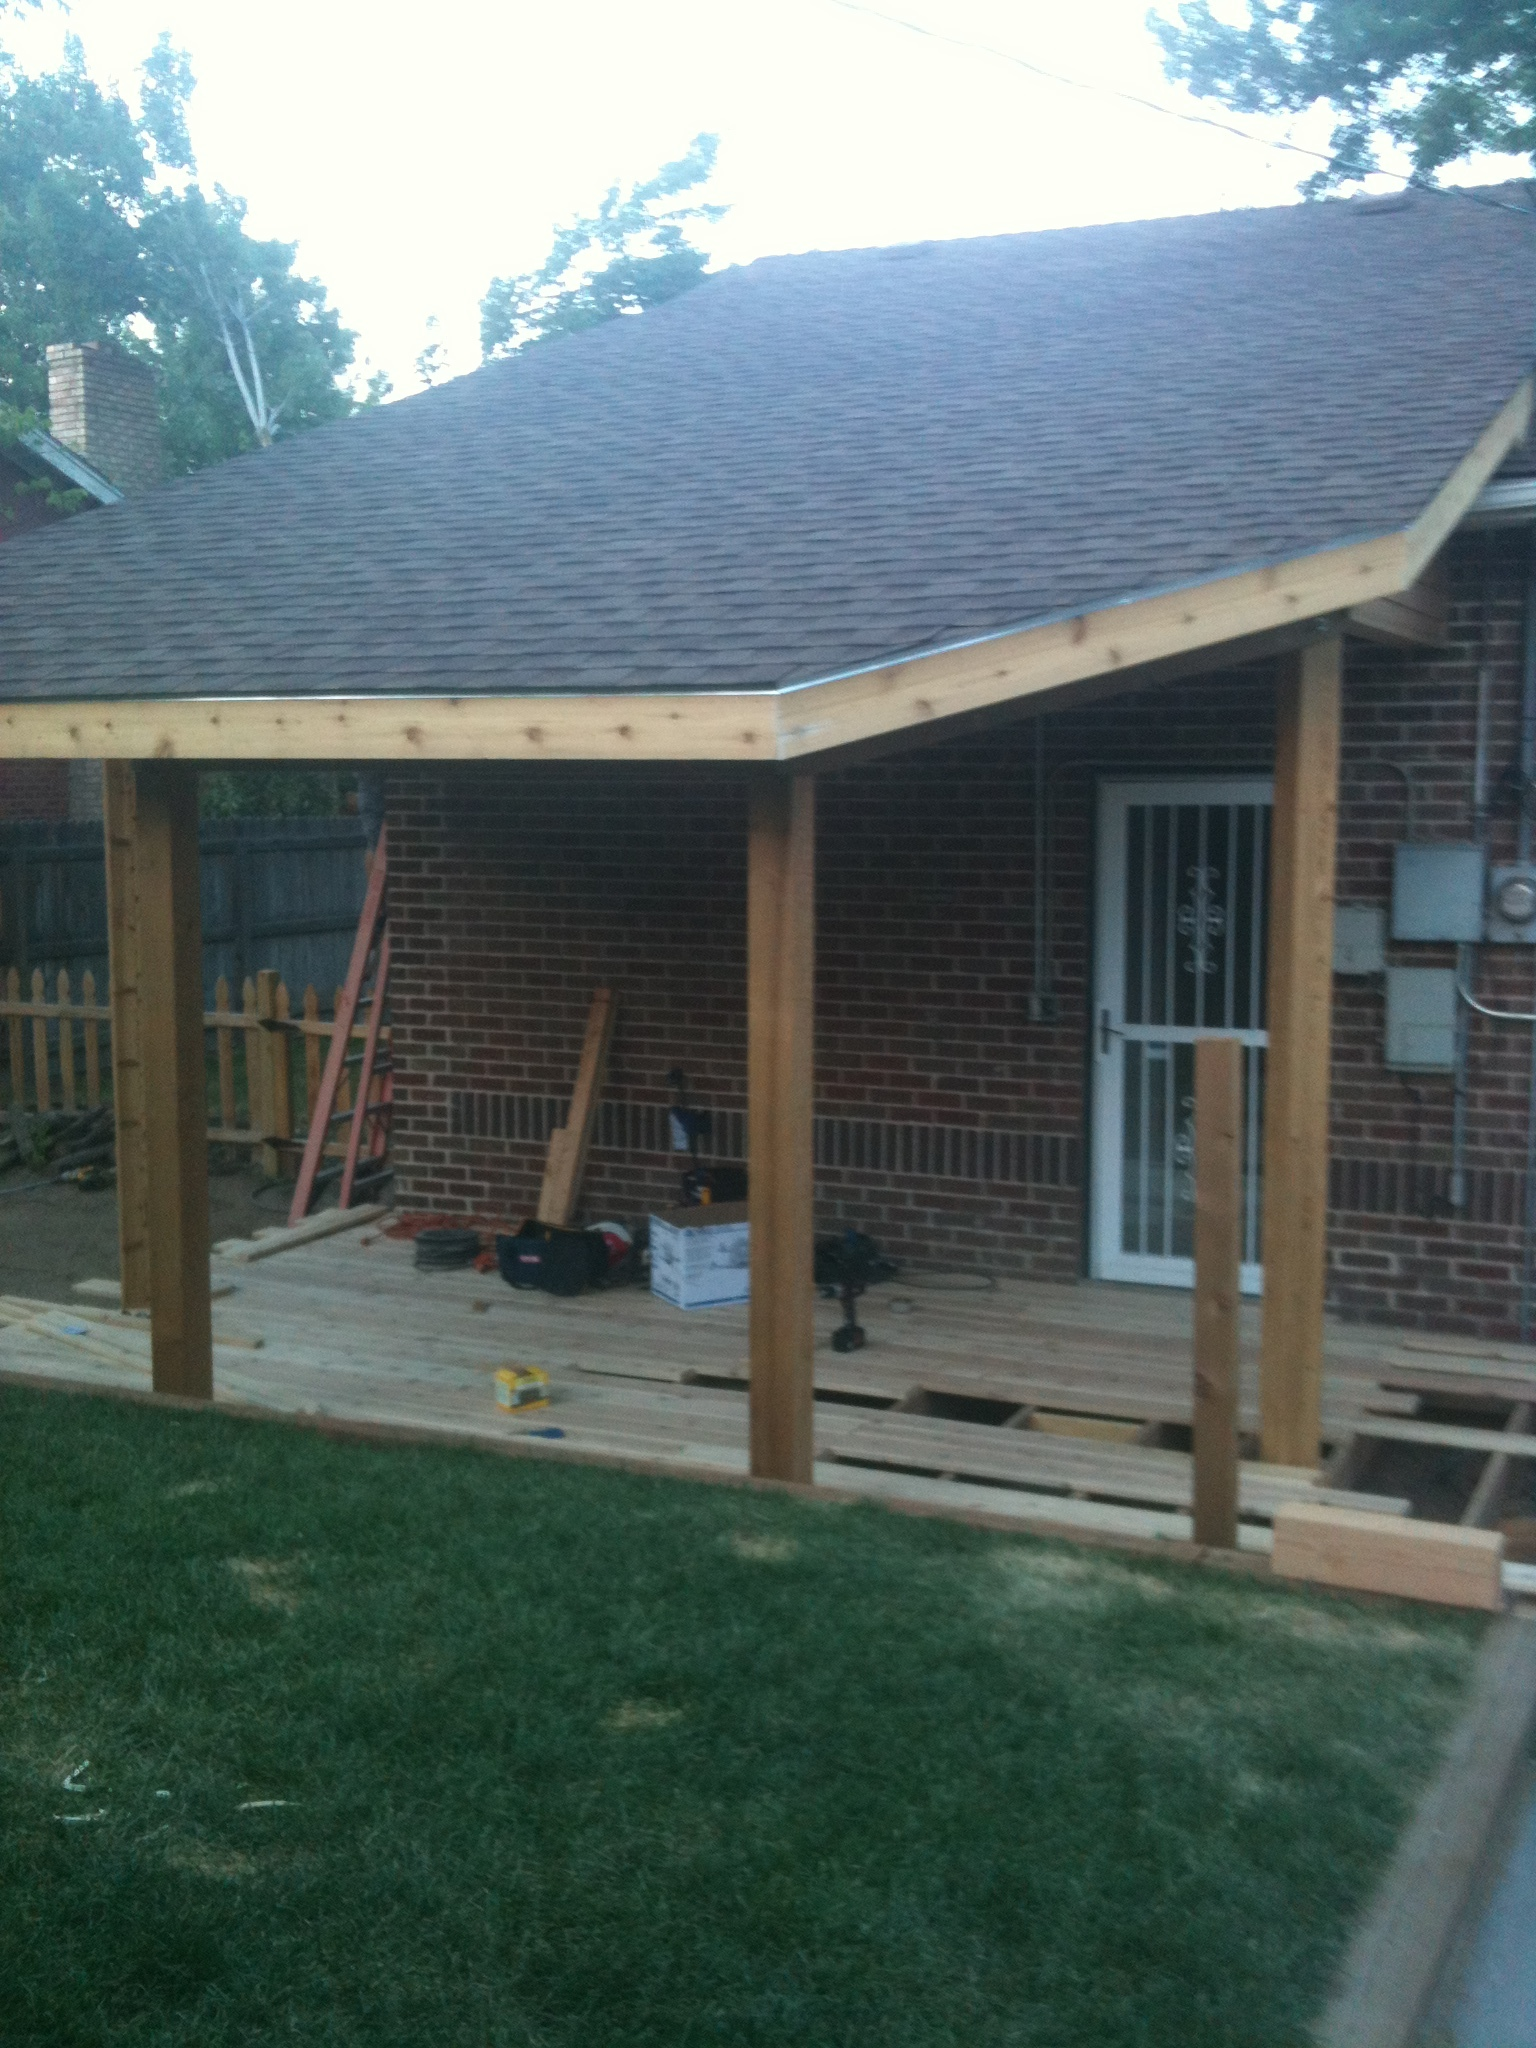 New porch roof with more height to allow more light into the back door